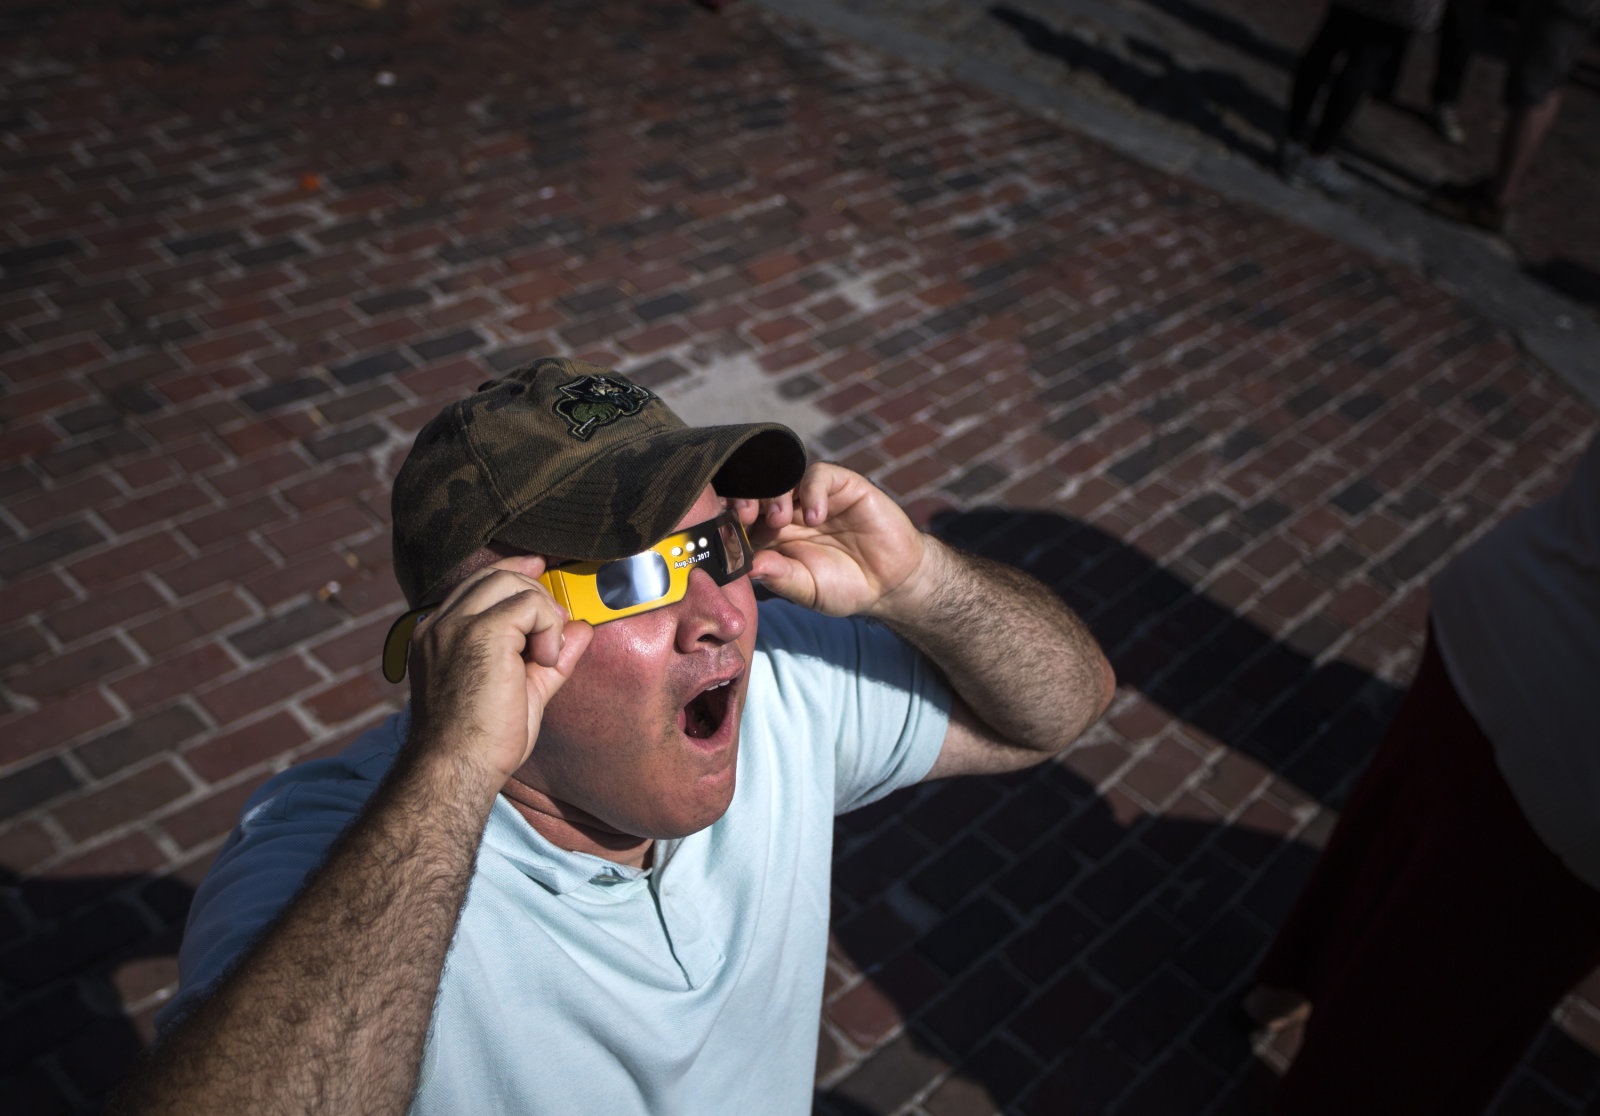 PORTLAND, ME - AUGUST 21: Glenn Shelton of Portland uses solar glasses to view the eclipse at Monument Square. (Staff photo by Derek Davis/Portland Press Herald via Getty Images)